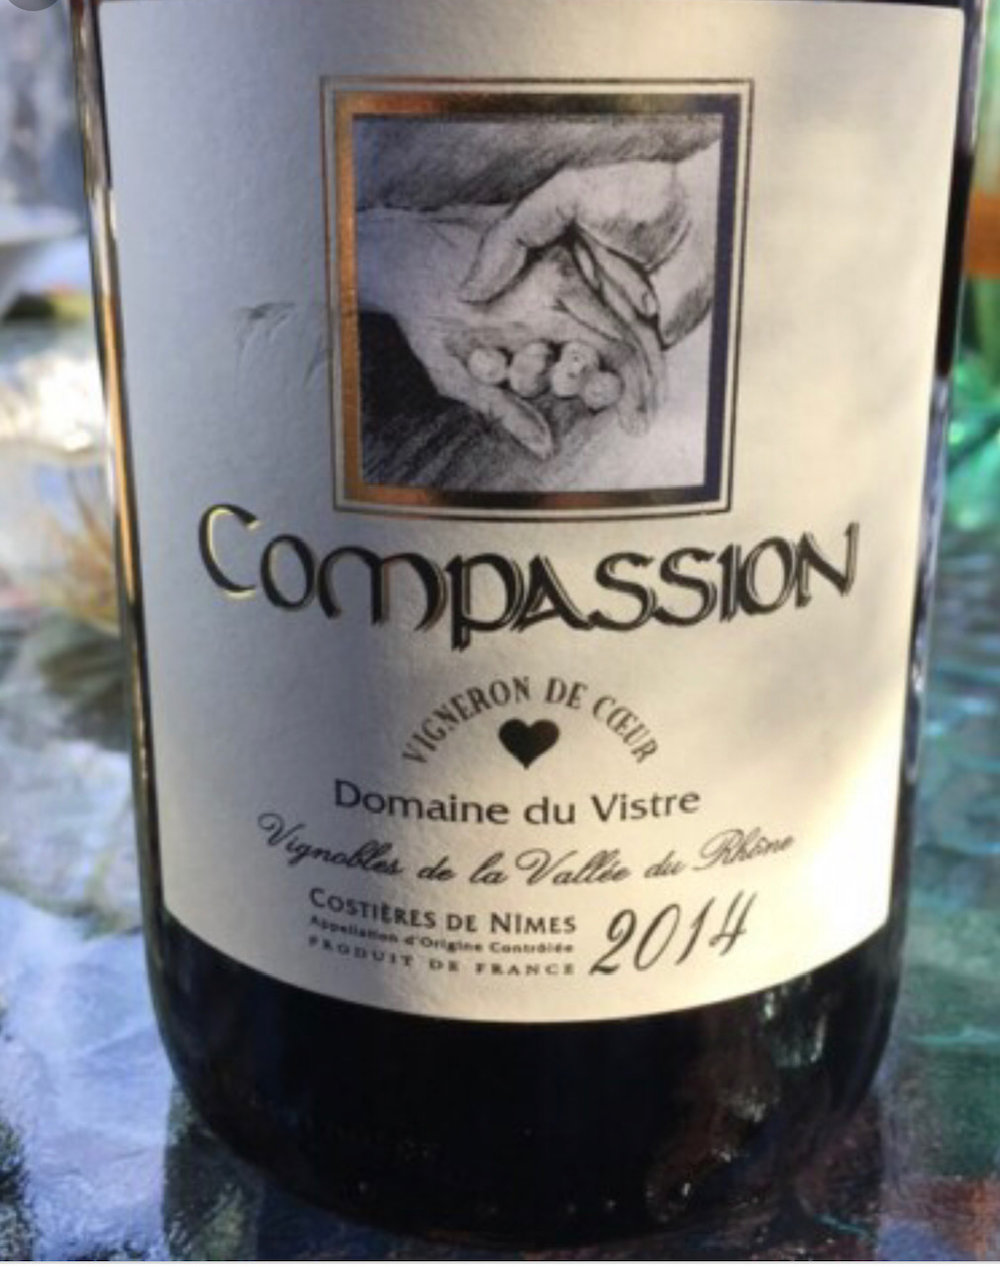 compassion is the new wine